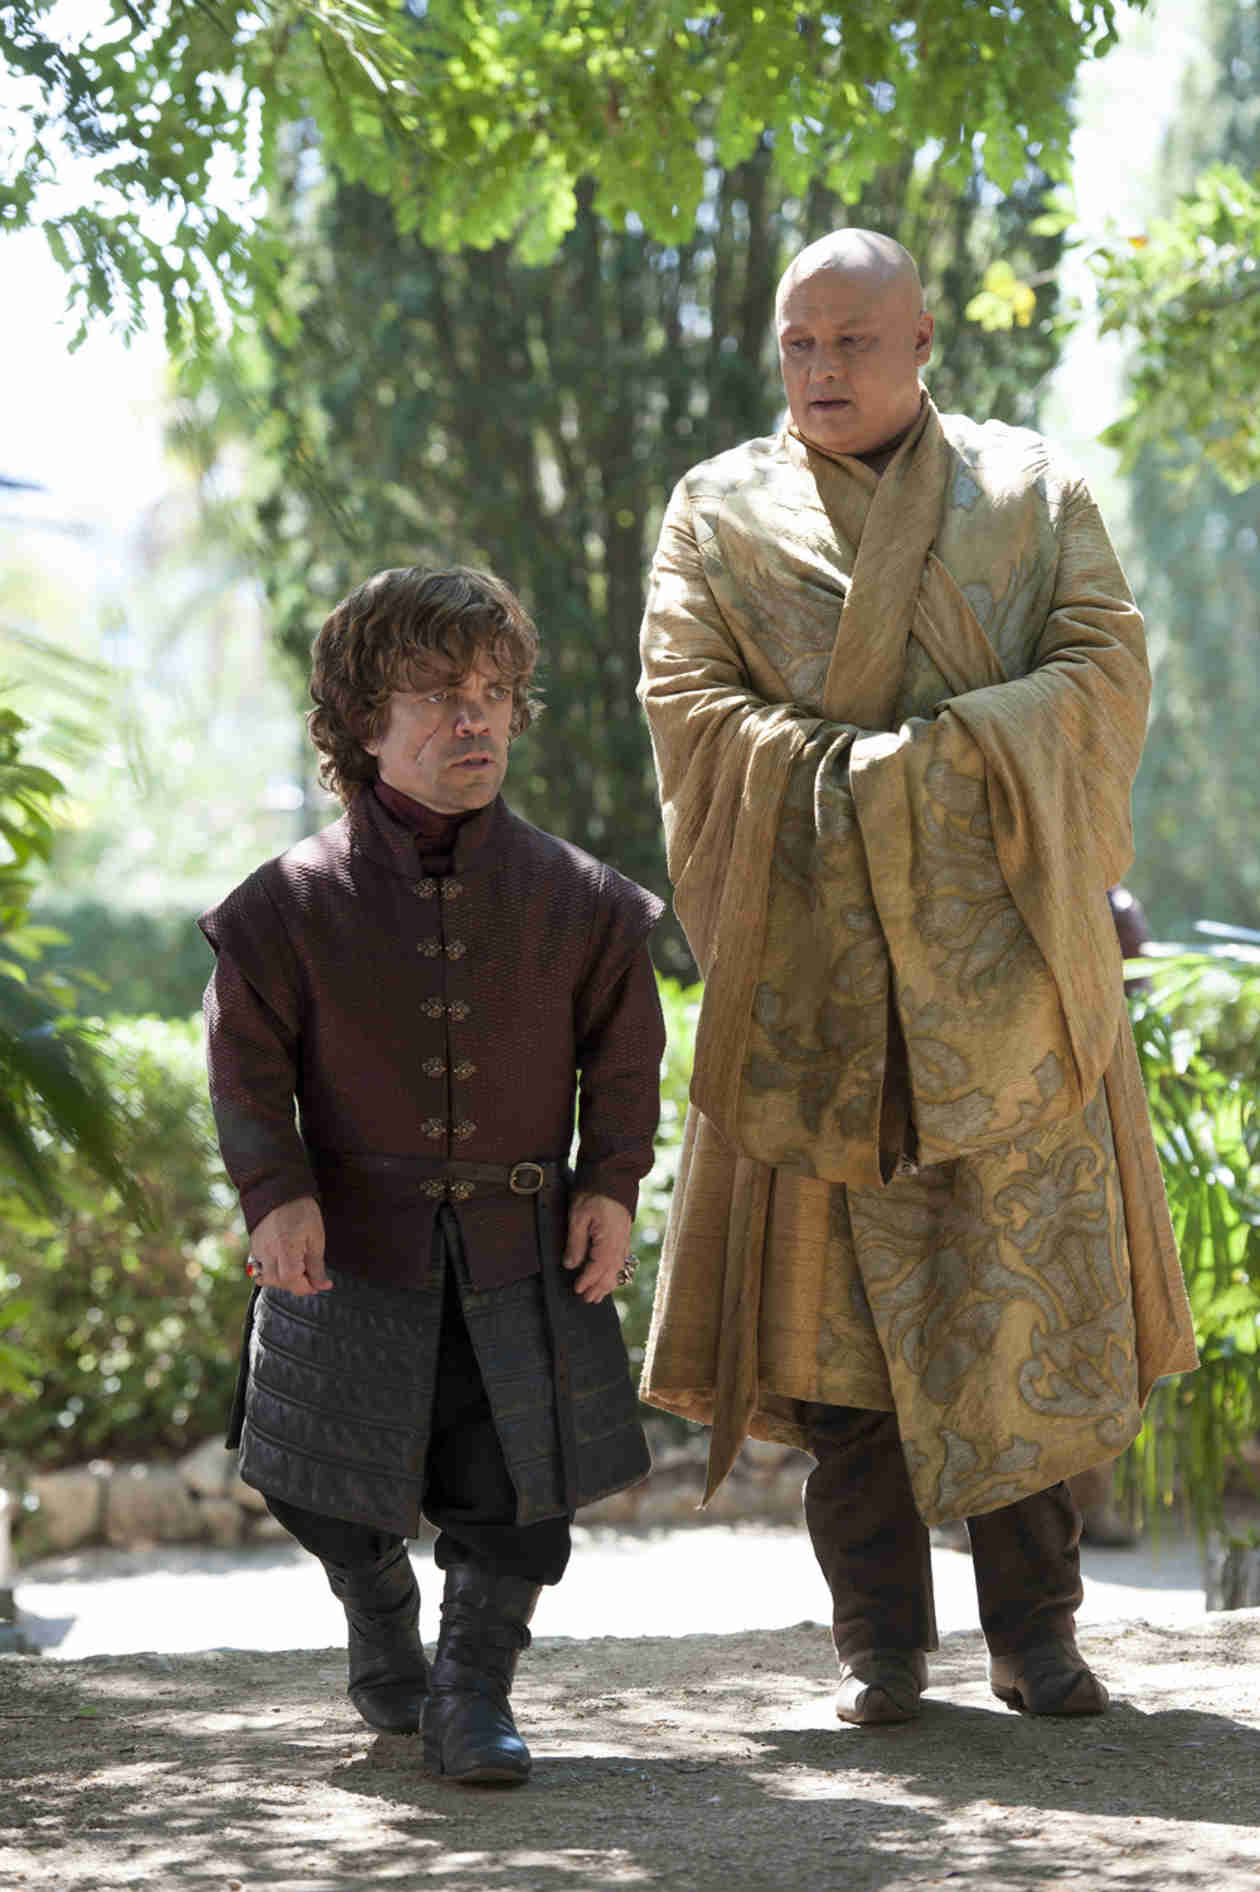 Is Game of Thrones New Tonight, April 20, 2014 — Easter Sunday?